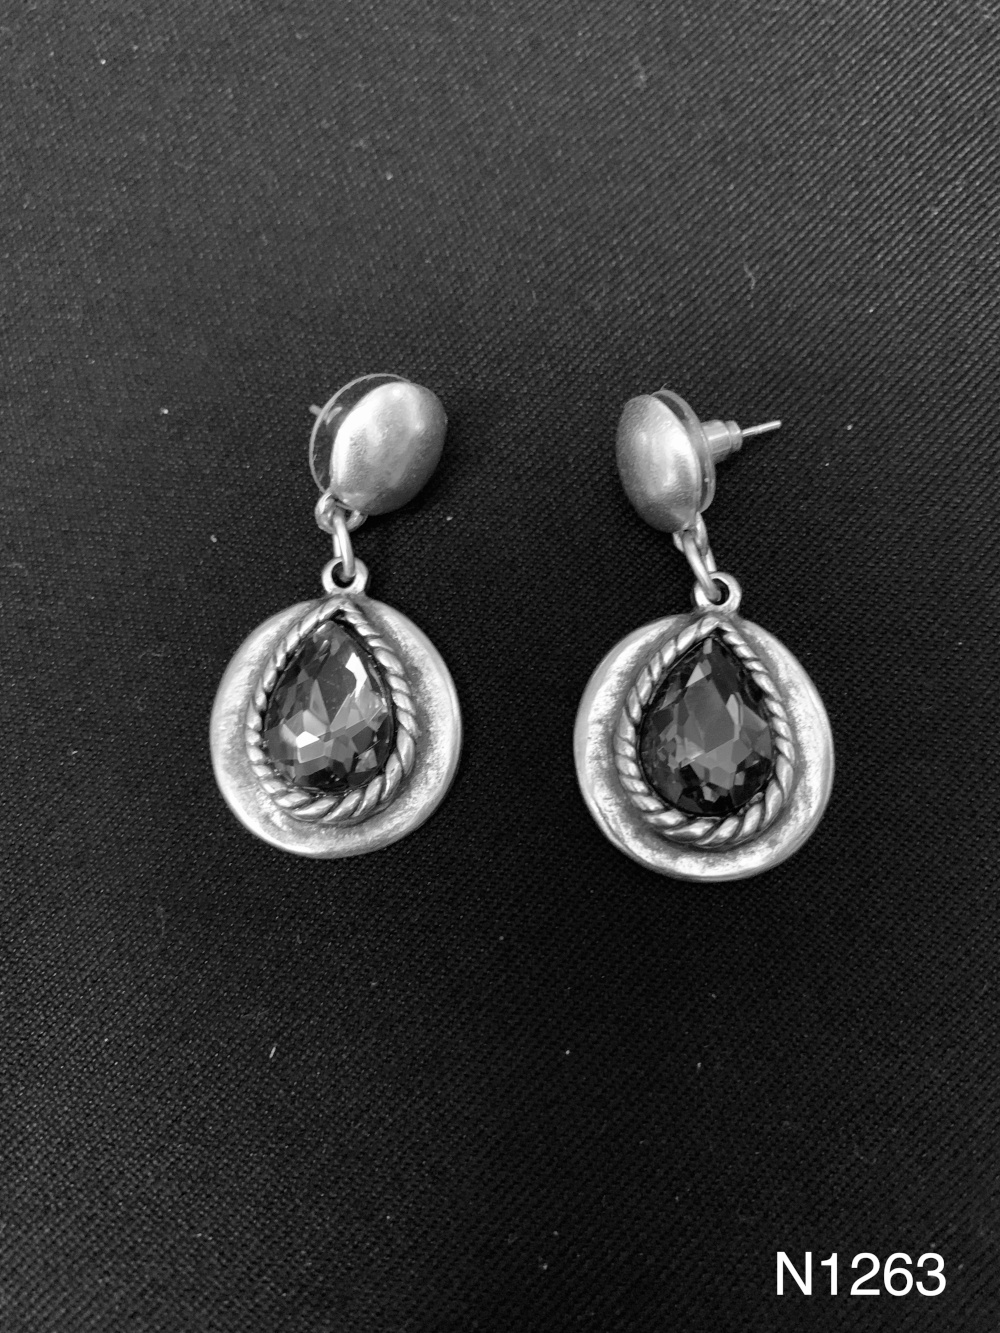 GLASS STONE EARRINGS N1263